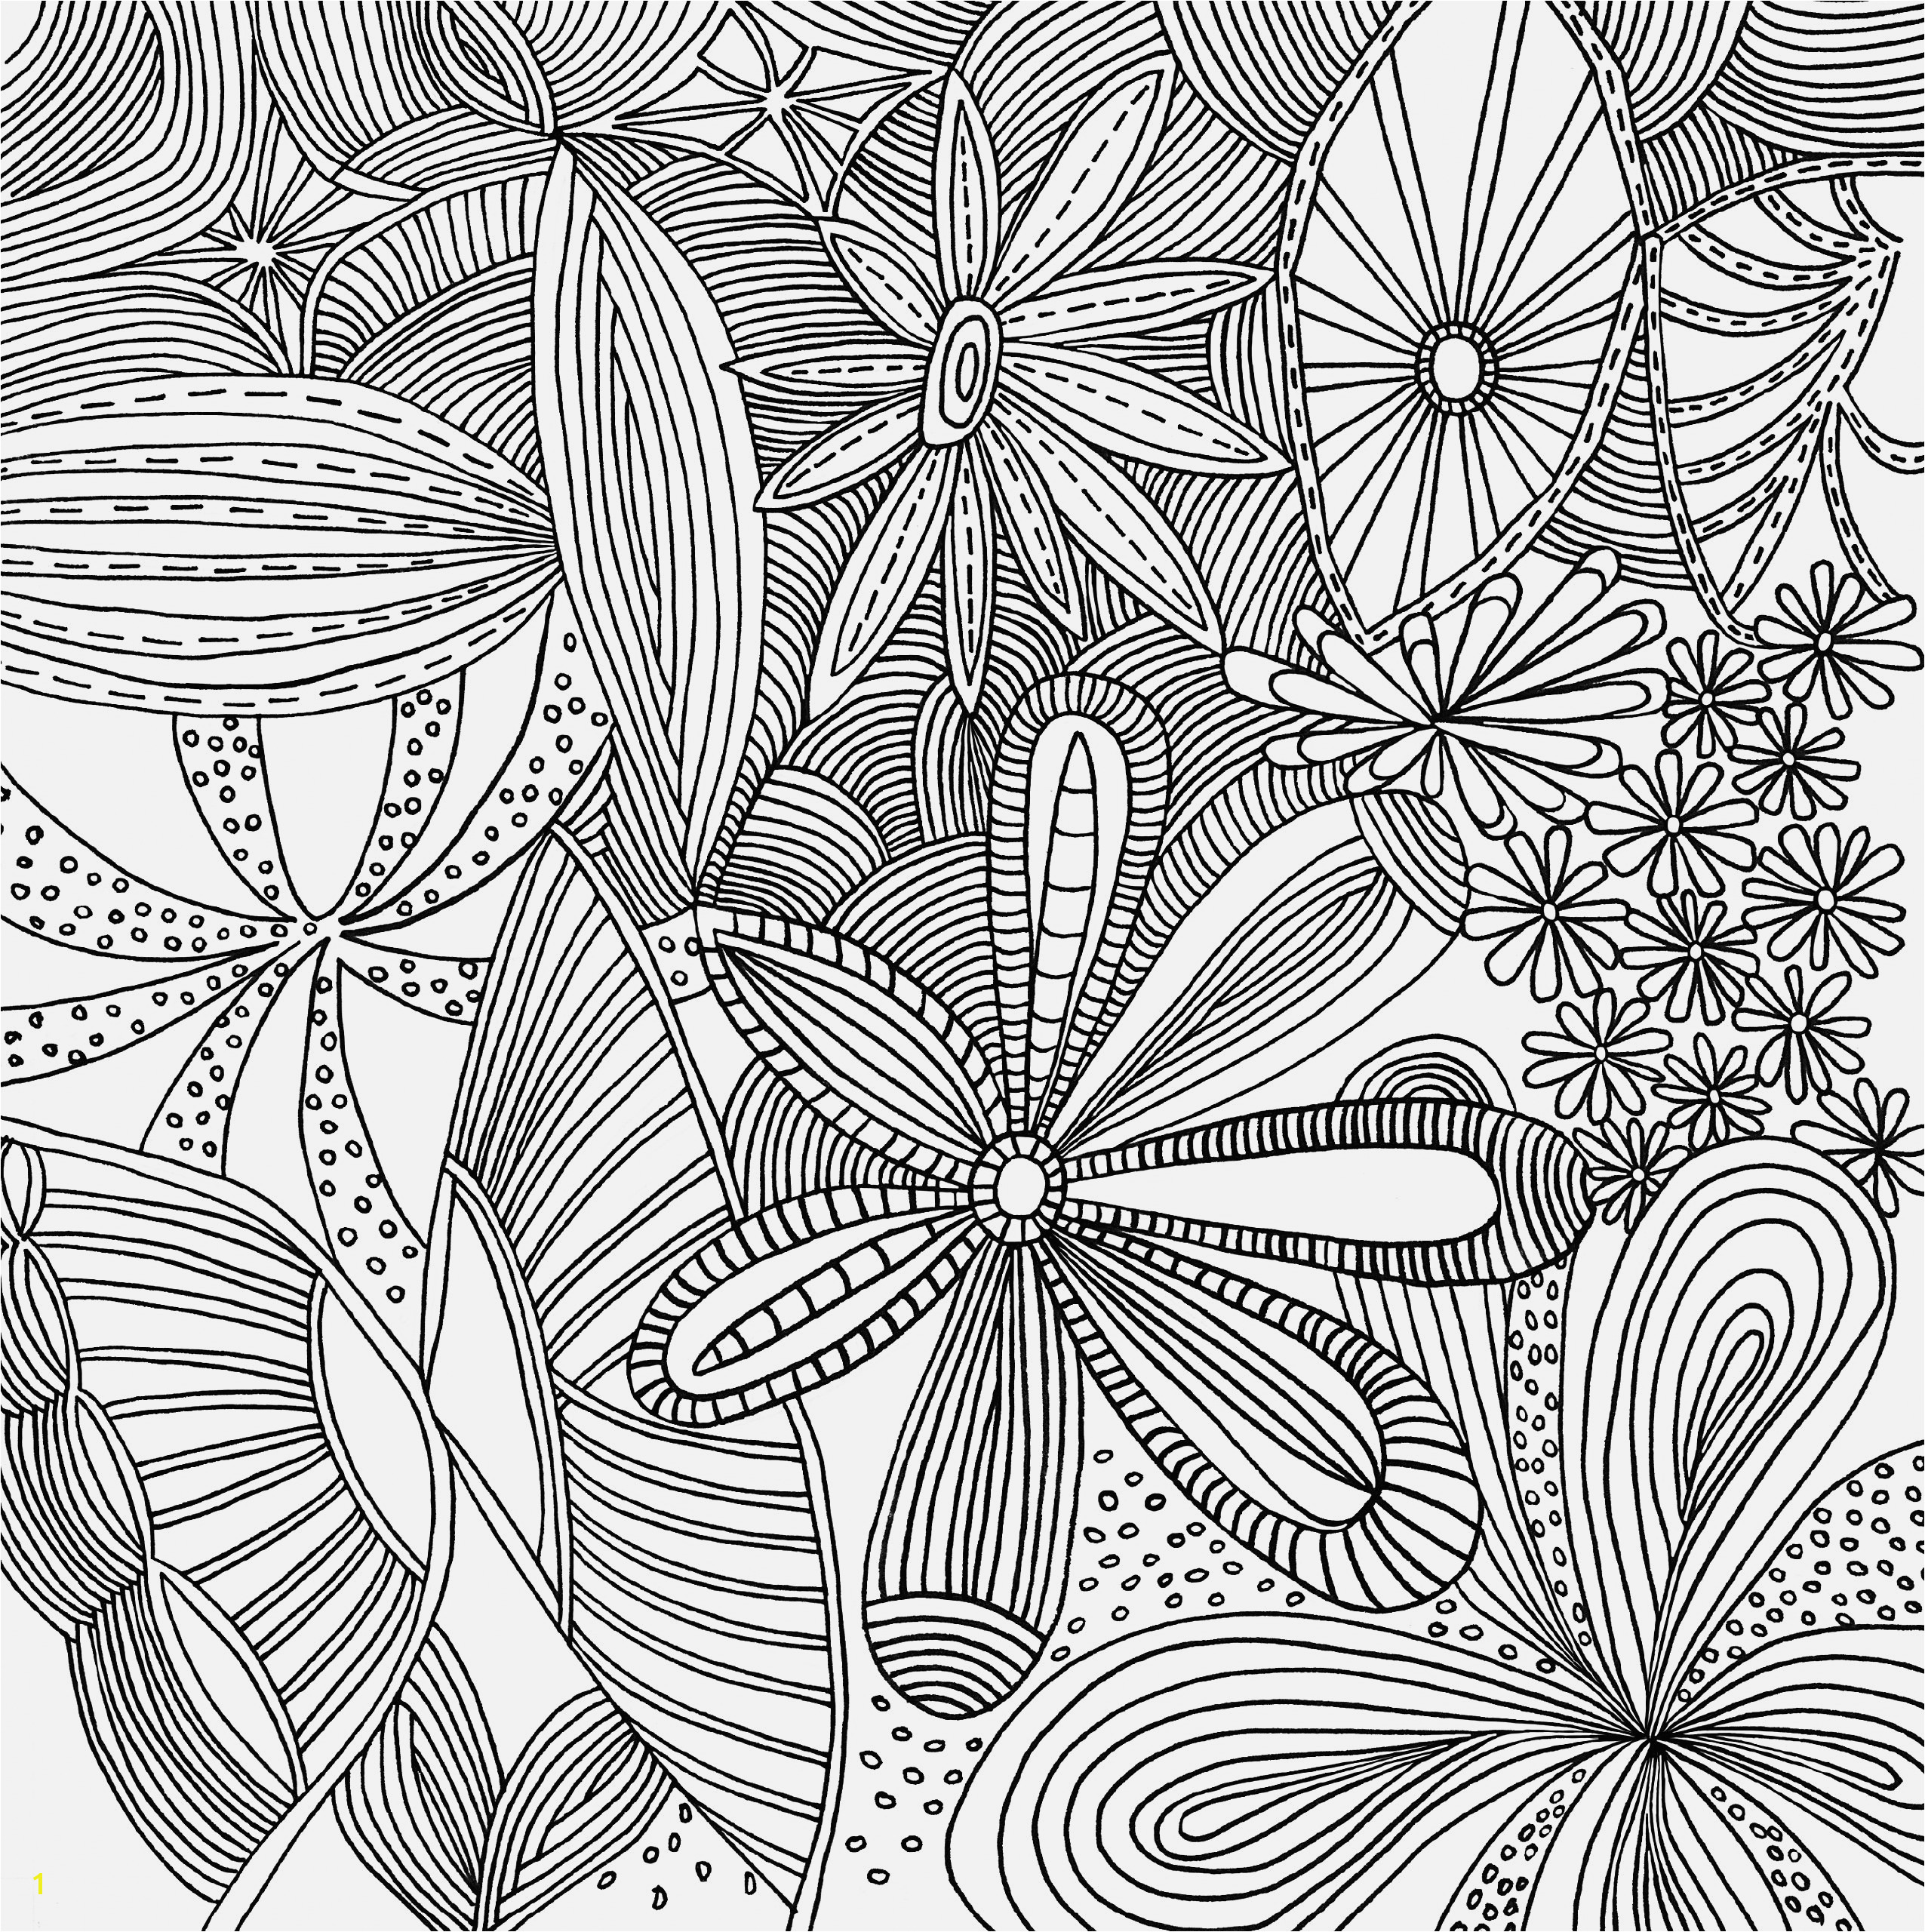 Jasmine Coloring Pages Amazing Advantages Coloring Pages Patterns Download